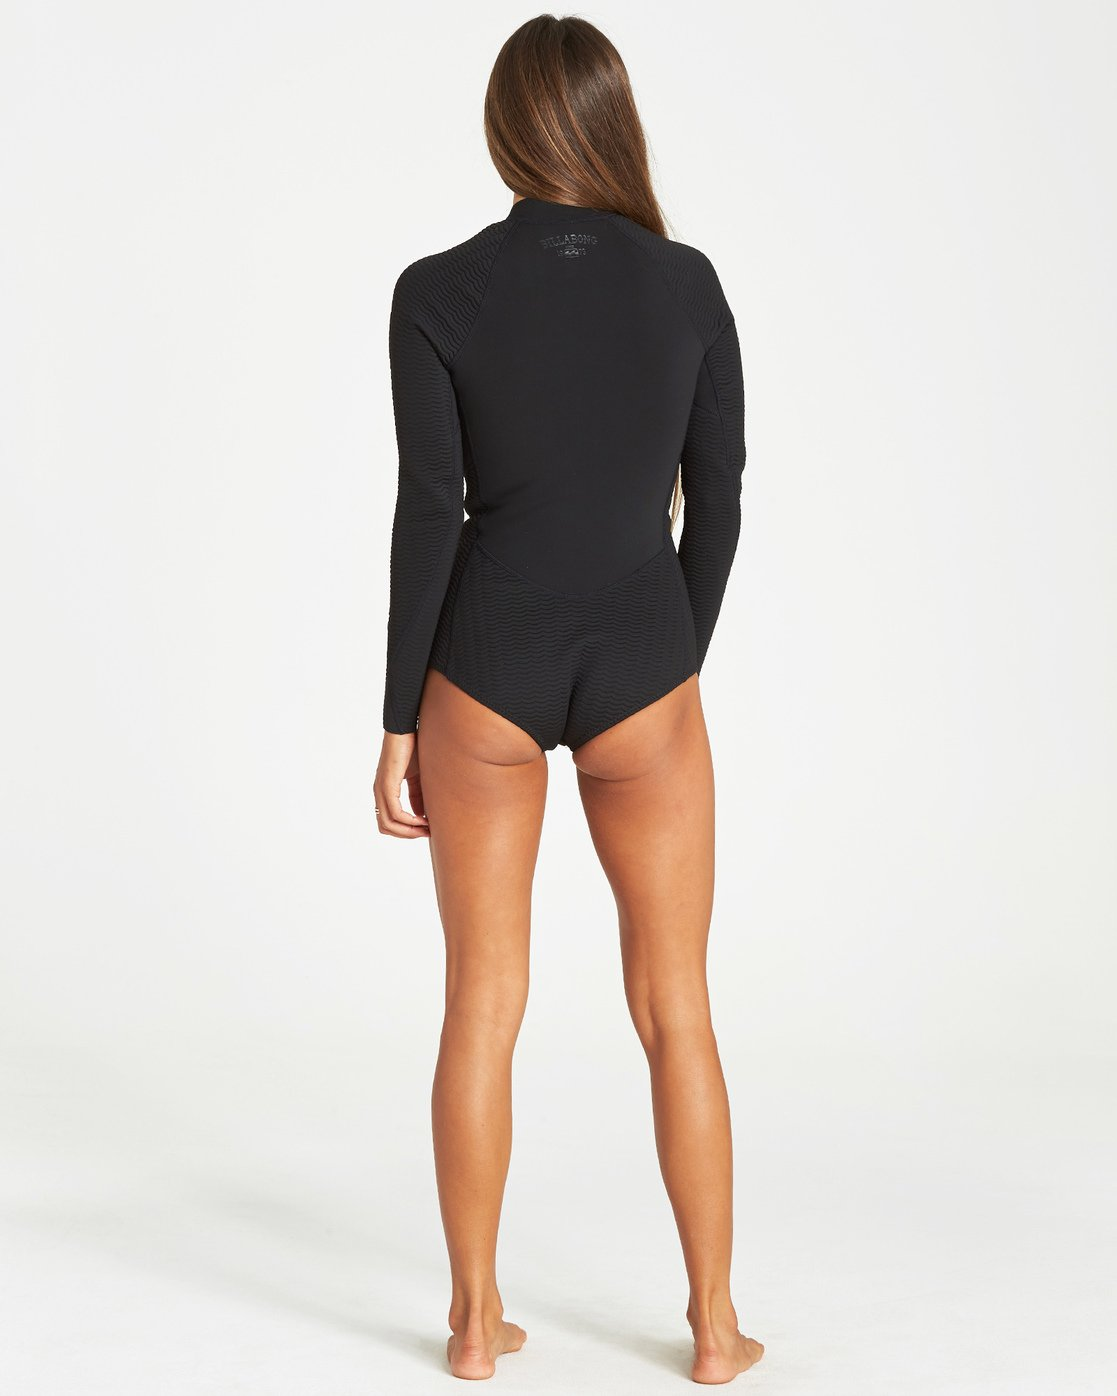 Langarm Samba BILLABONG Damen Salty DayZ 2mm Shorty Neoprenanzug Damen Langarm Springsuit Neoprenanzug